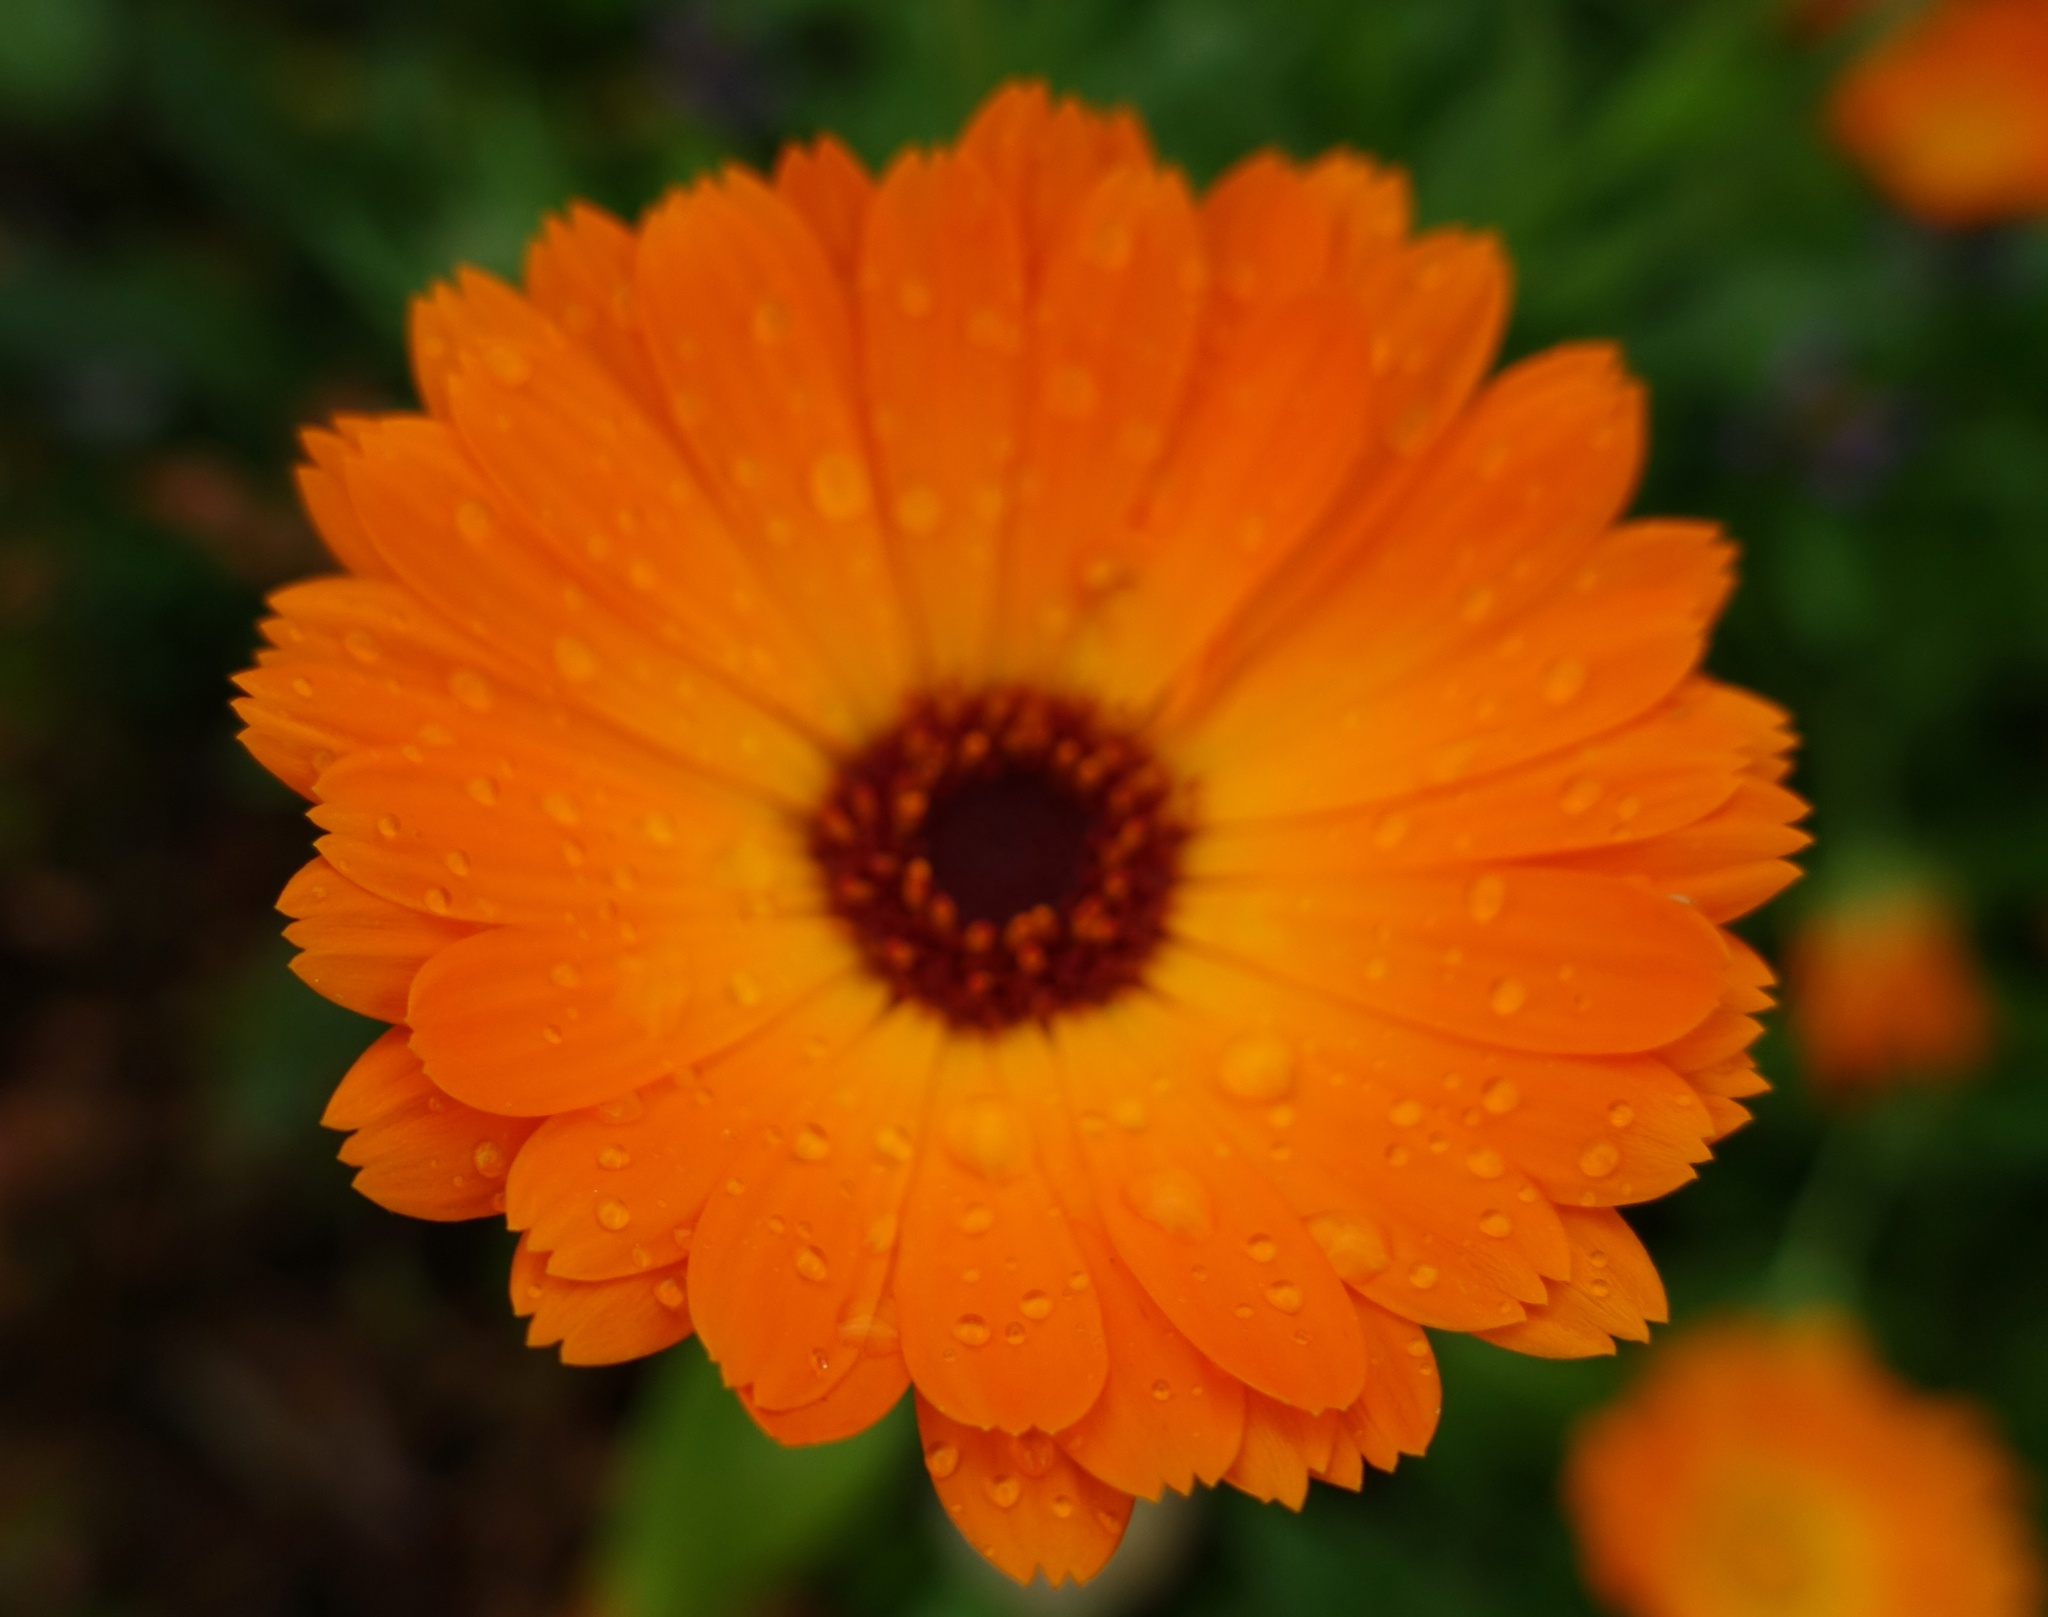 Summer Flowers on a Wet Summers day by kayThornton